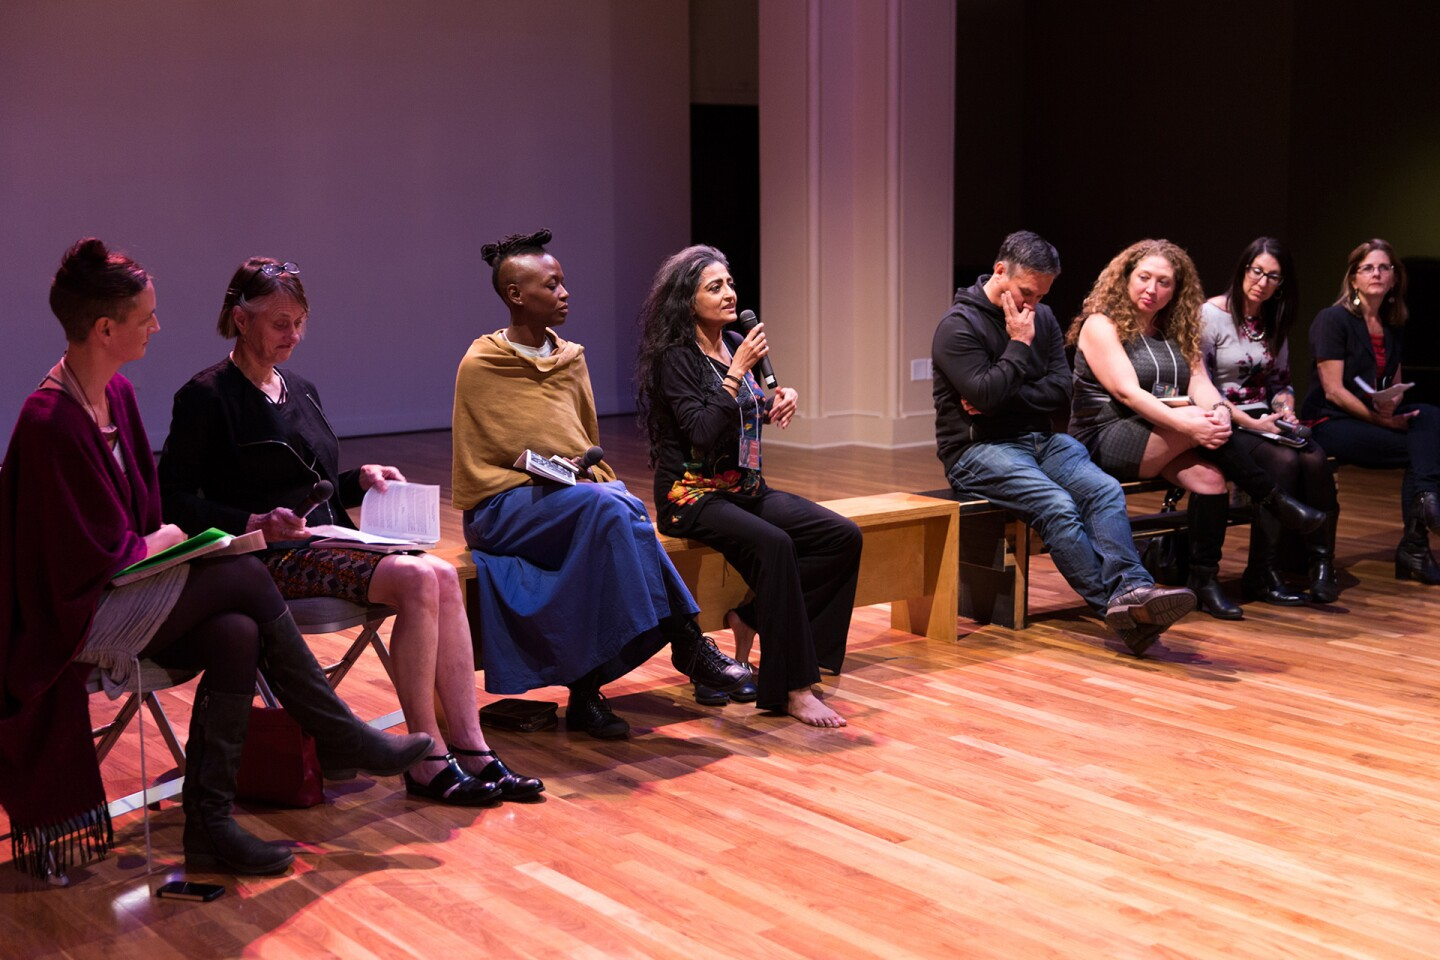 Jacqueline Shea-Murphy leads a discussion at the 2012 Indigenous Choreographers at Riverside event